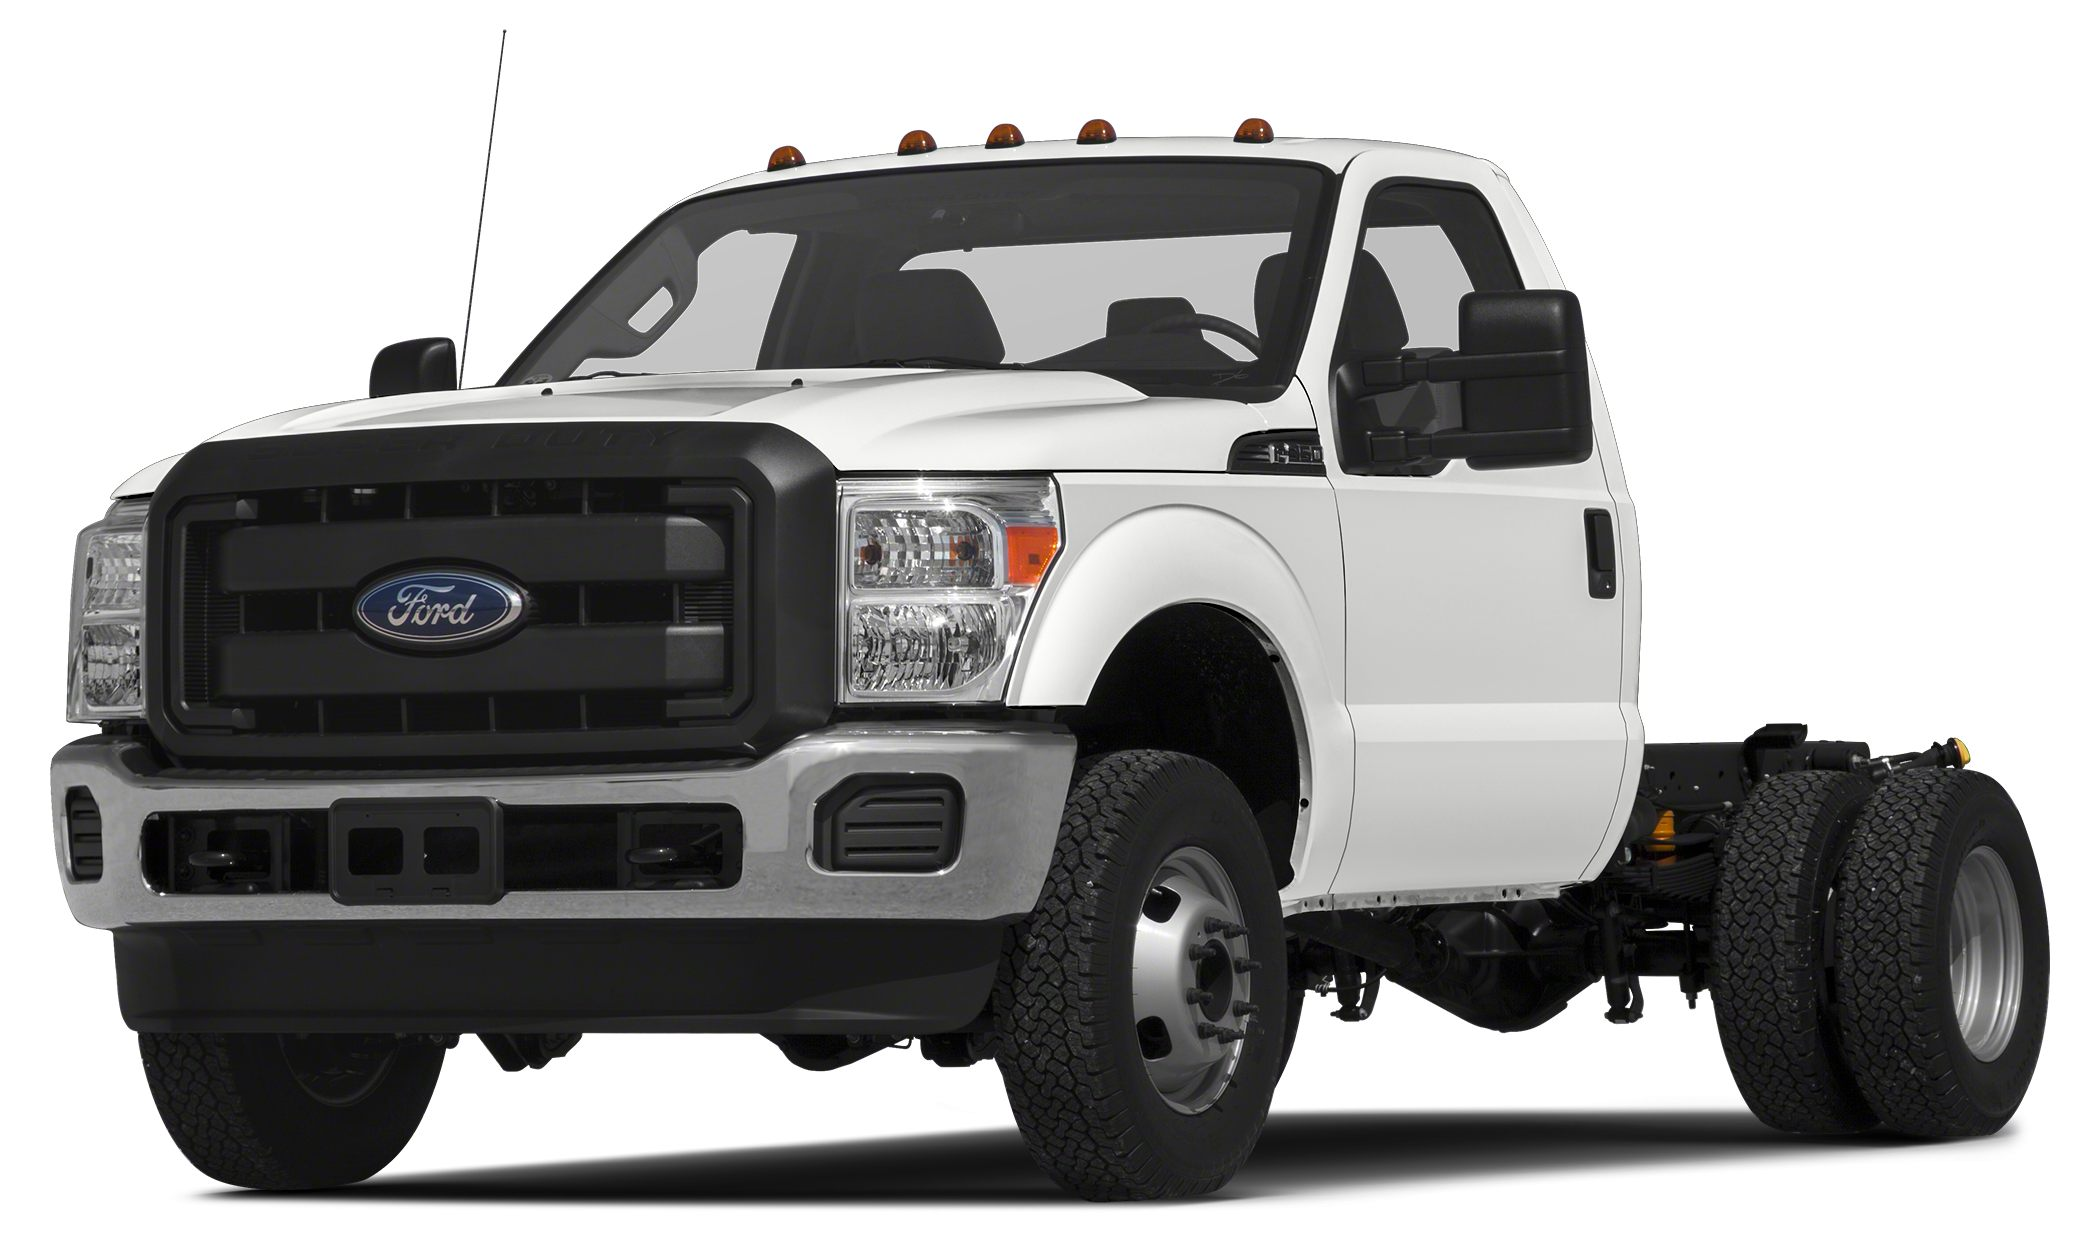 2015 FORD F-350 CHASSIS CAB XL